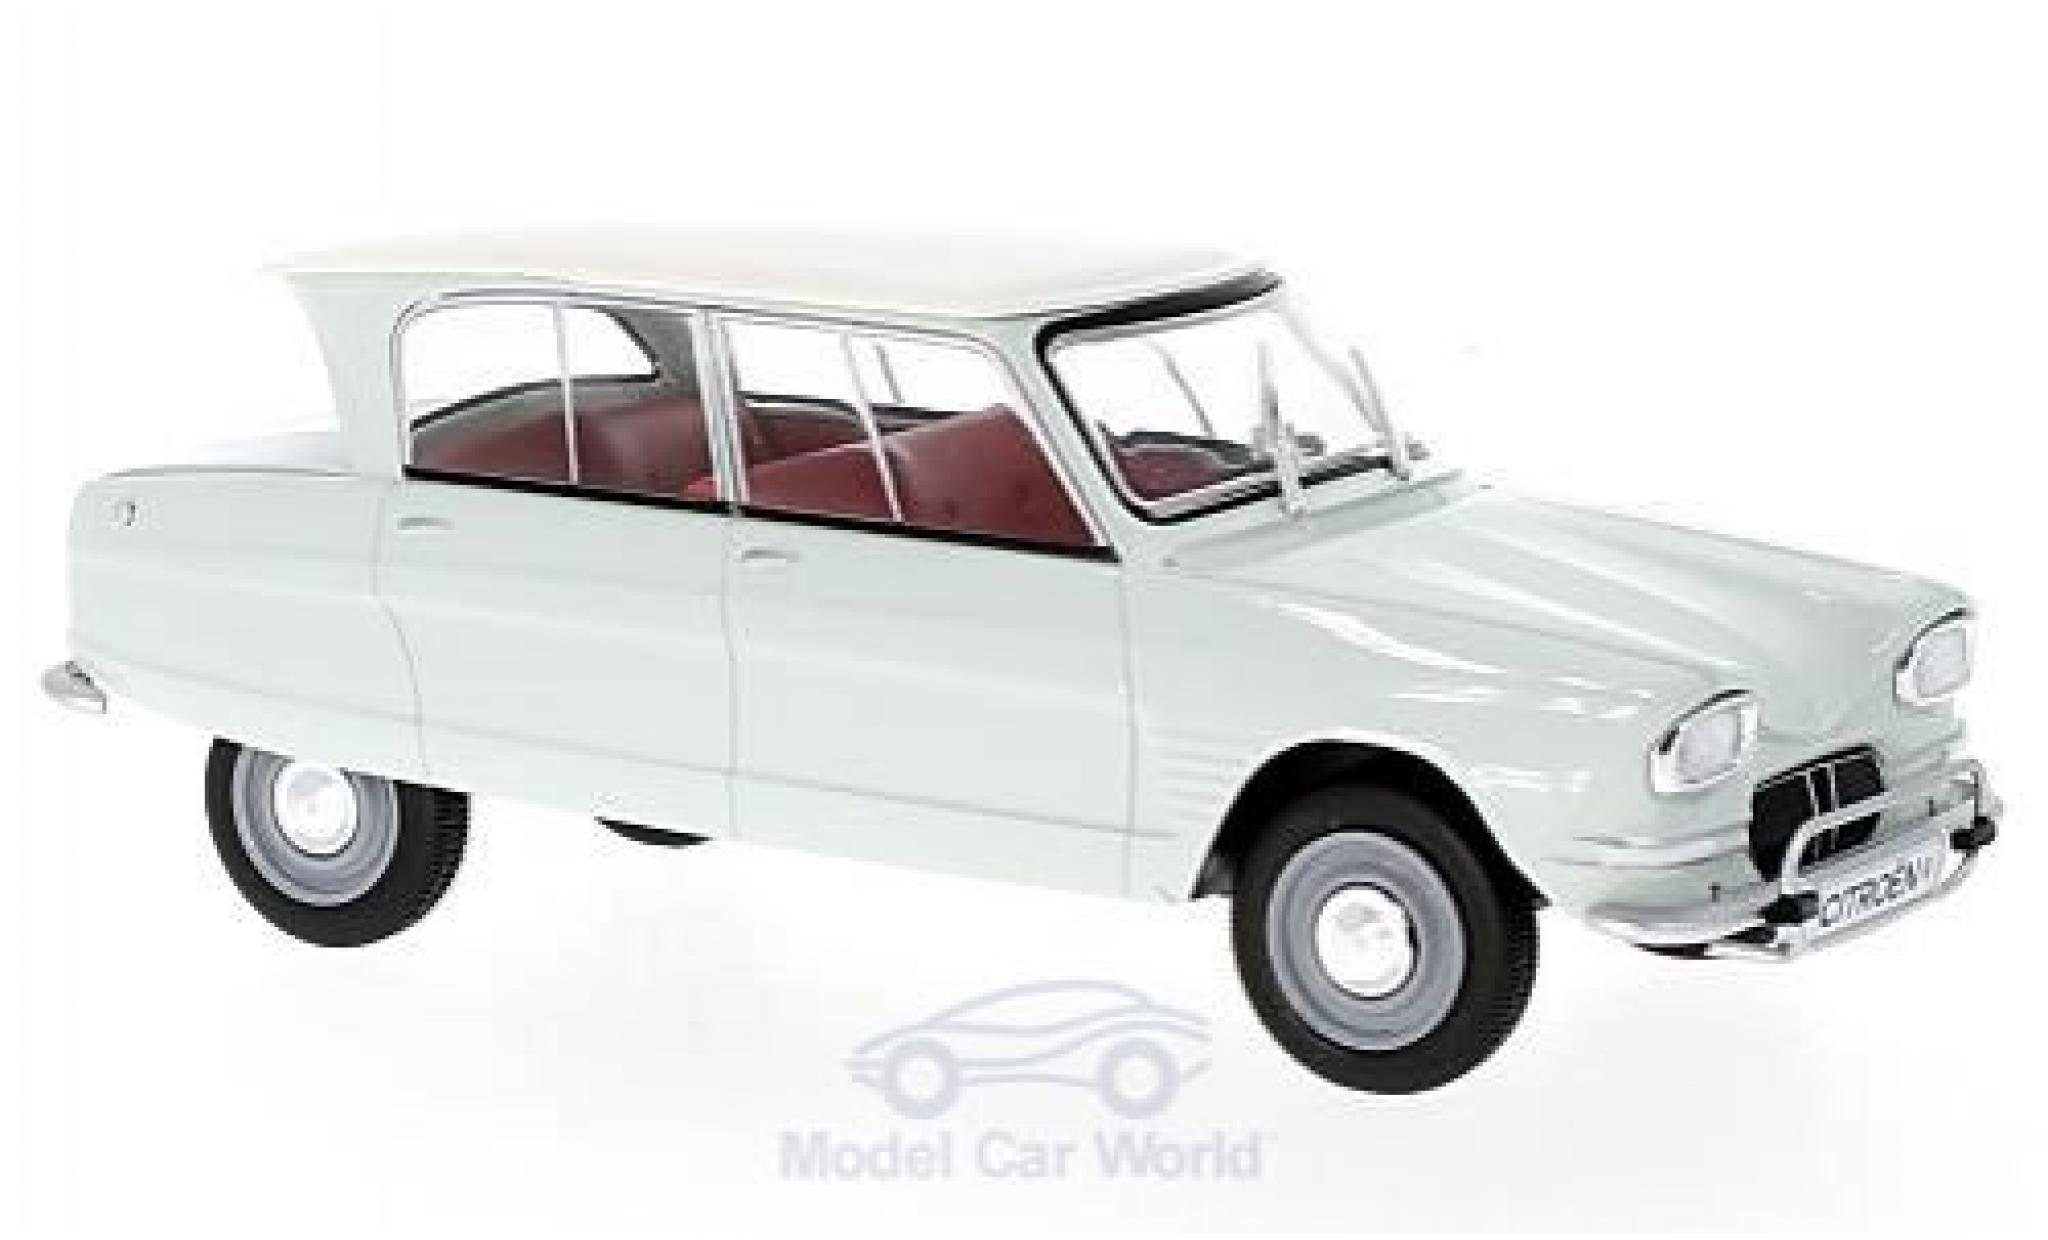 Citroen Ami 6 1/24 WhiteBox AMI 6 verte/blanche 1961